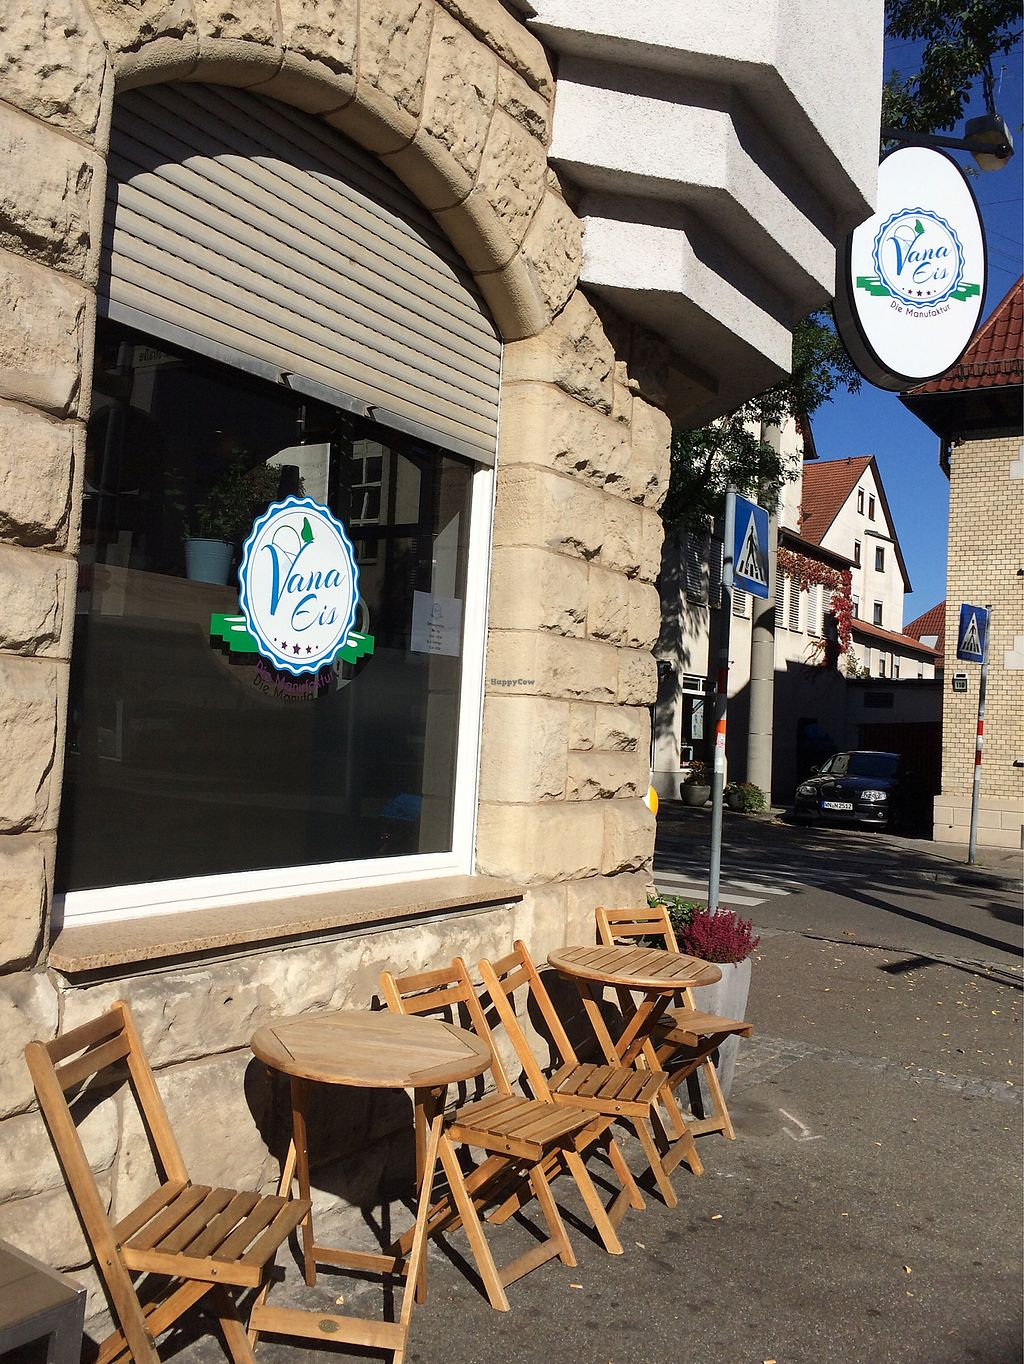 """Photo of Vana Eis - Die Manufaktur  by <a href=""""/members/profile/Carissima"""">Carissima</a> <br/>Wooden tables in front of ice cream parlor  <br/> October 14, 2017  - <a href='/contact/abuse/image/97074/315051'>Report</a>"""